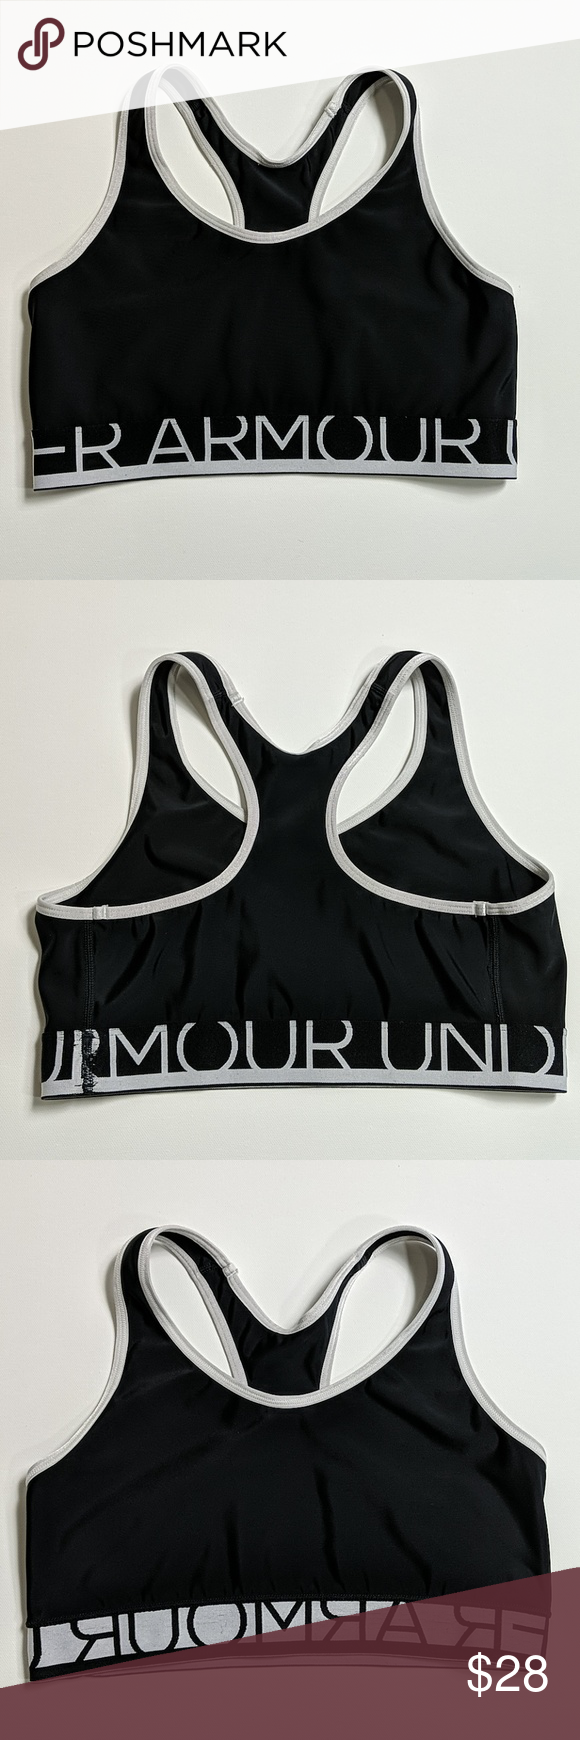 Under Armour Still Gotta Have It in black EUC UA sports bra in black with white trim. Tags removed. Designed for seamless comfort to reduce irritation and wide elastic for good support.  Chest 13 Length 11.5 Fits like a small  238 Under Armour Intimates & Sleepwear Bras #gottahaveit